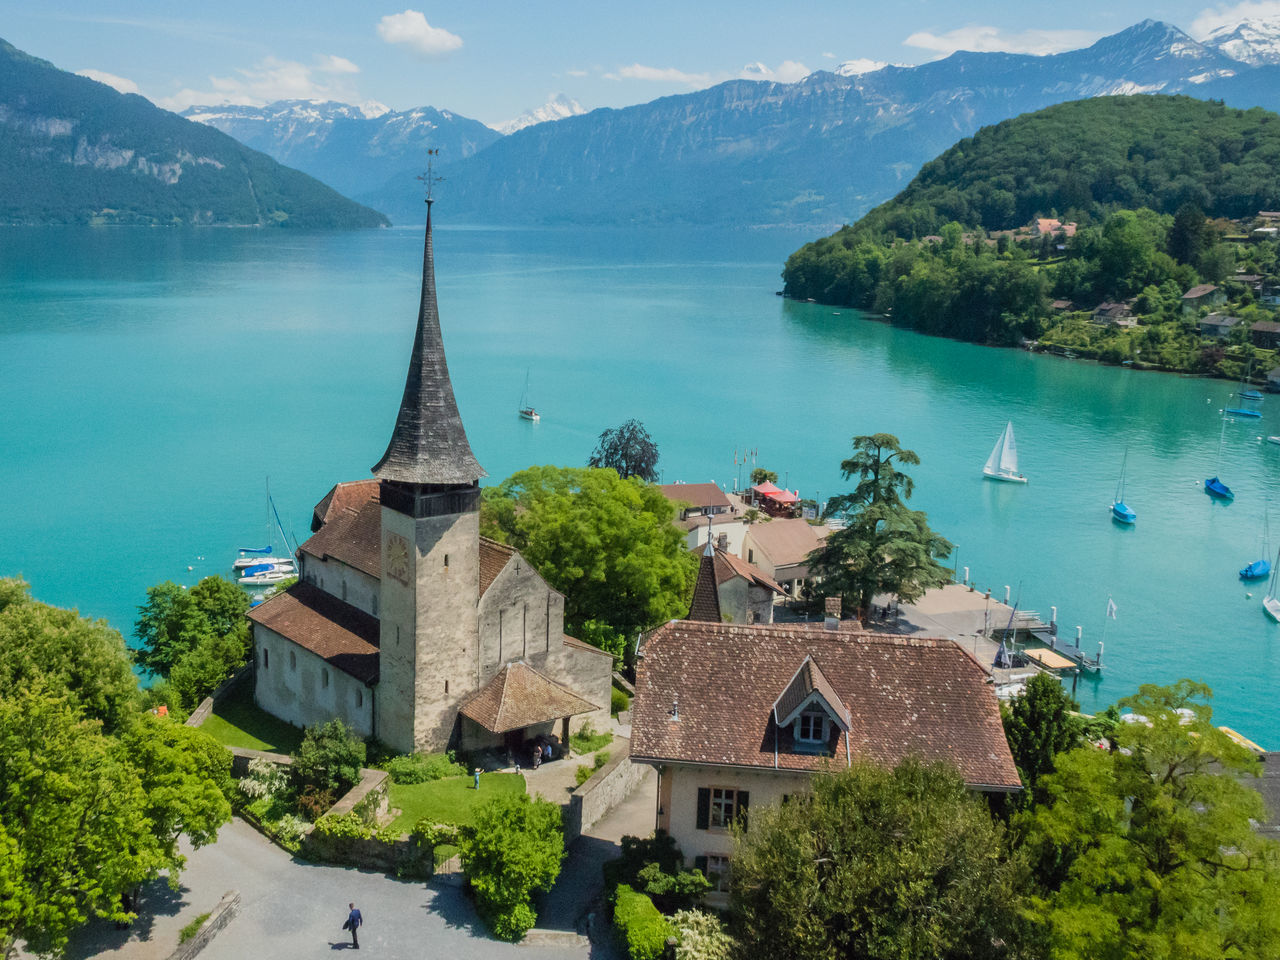 Spiez Castle Architecture Beauty In Nature Blue Built Structure Day Green Color Hill Idyllic Landscape Mountain Mountain Range Nature No People Non-urban Scene Outdoors Scenics Sky Spiez Castle Town TOWNSCAPE Tranquil Scene Tranquility Travel Destinations Tree Water